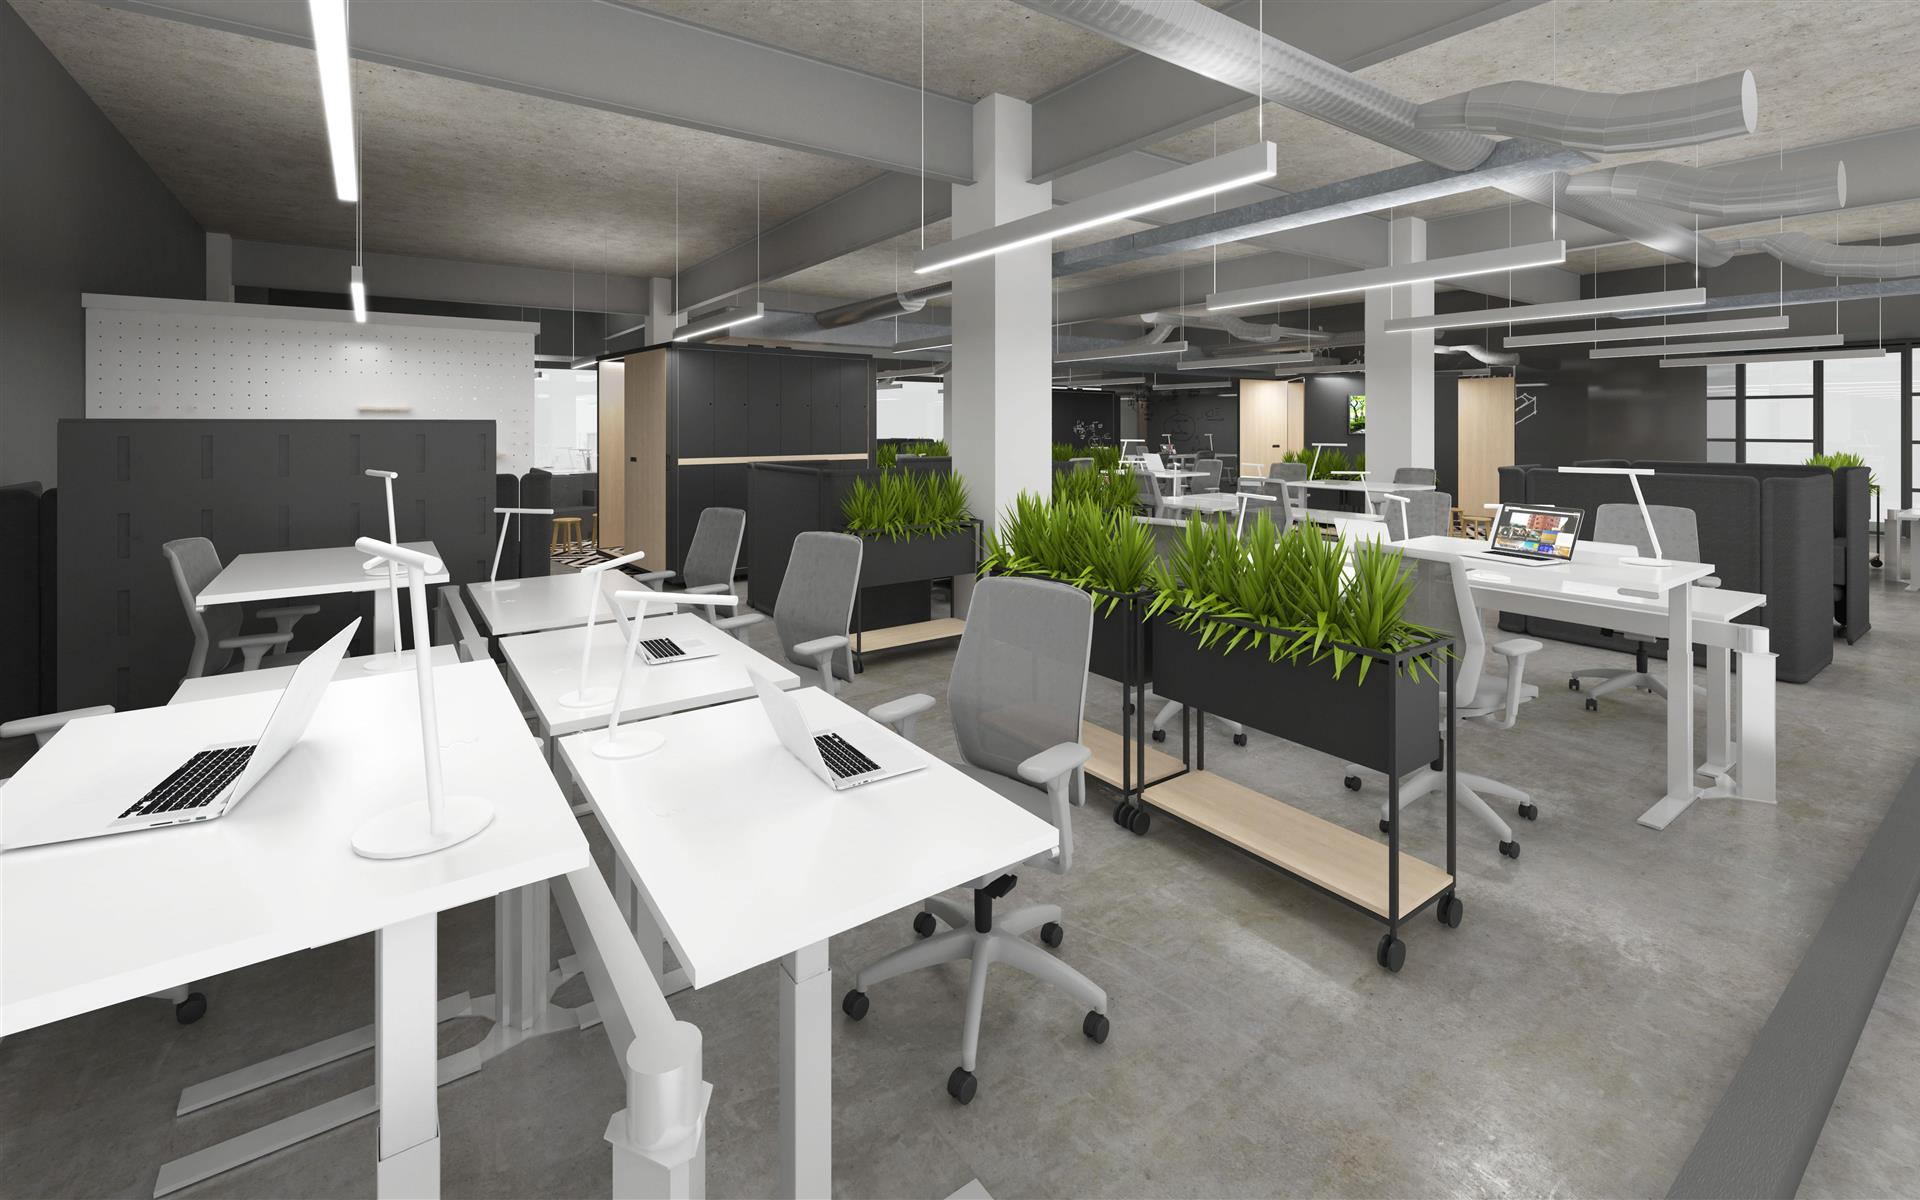 altSpace | Chicago - altSpace for 60